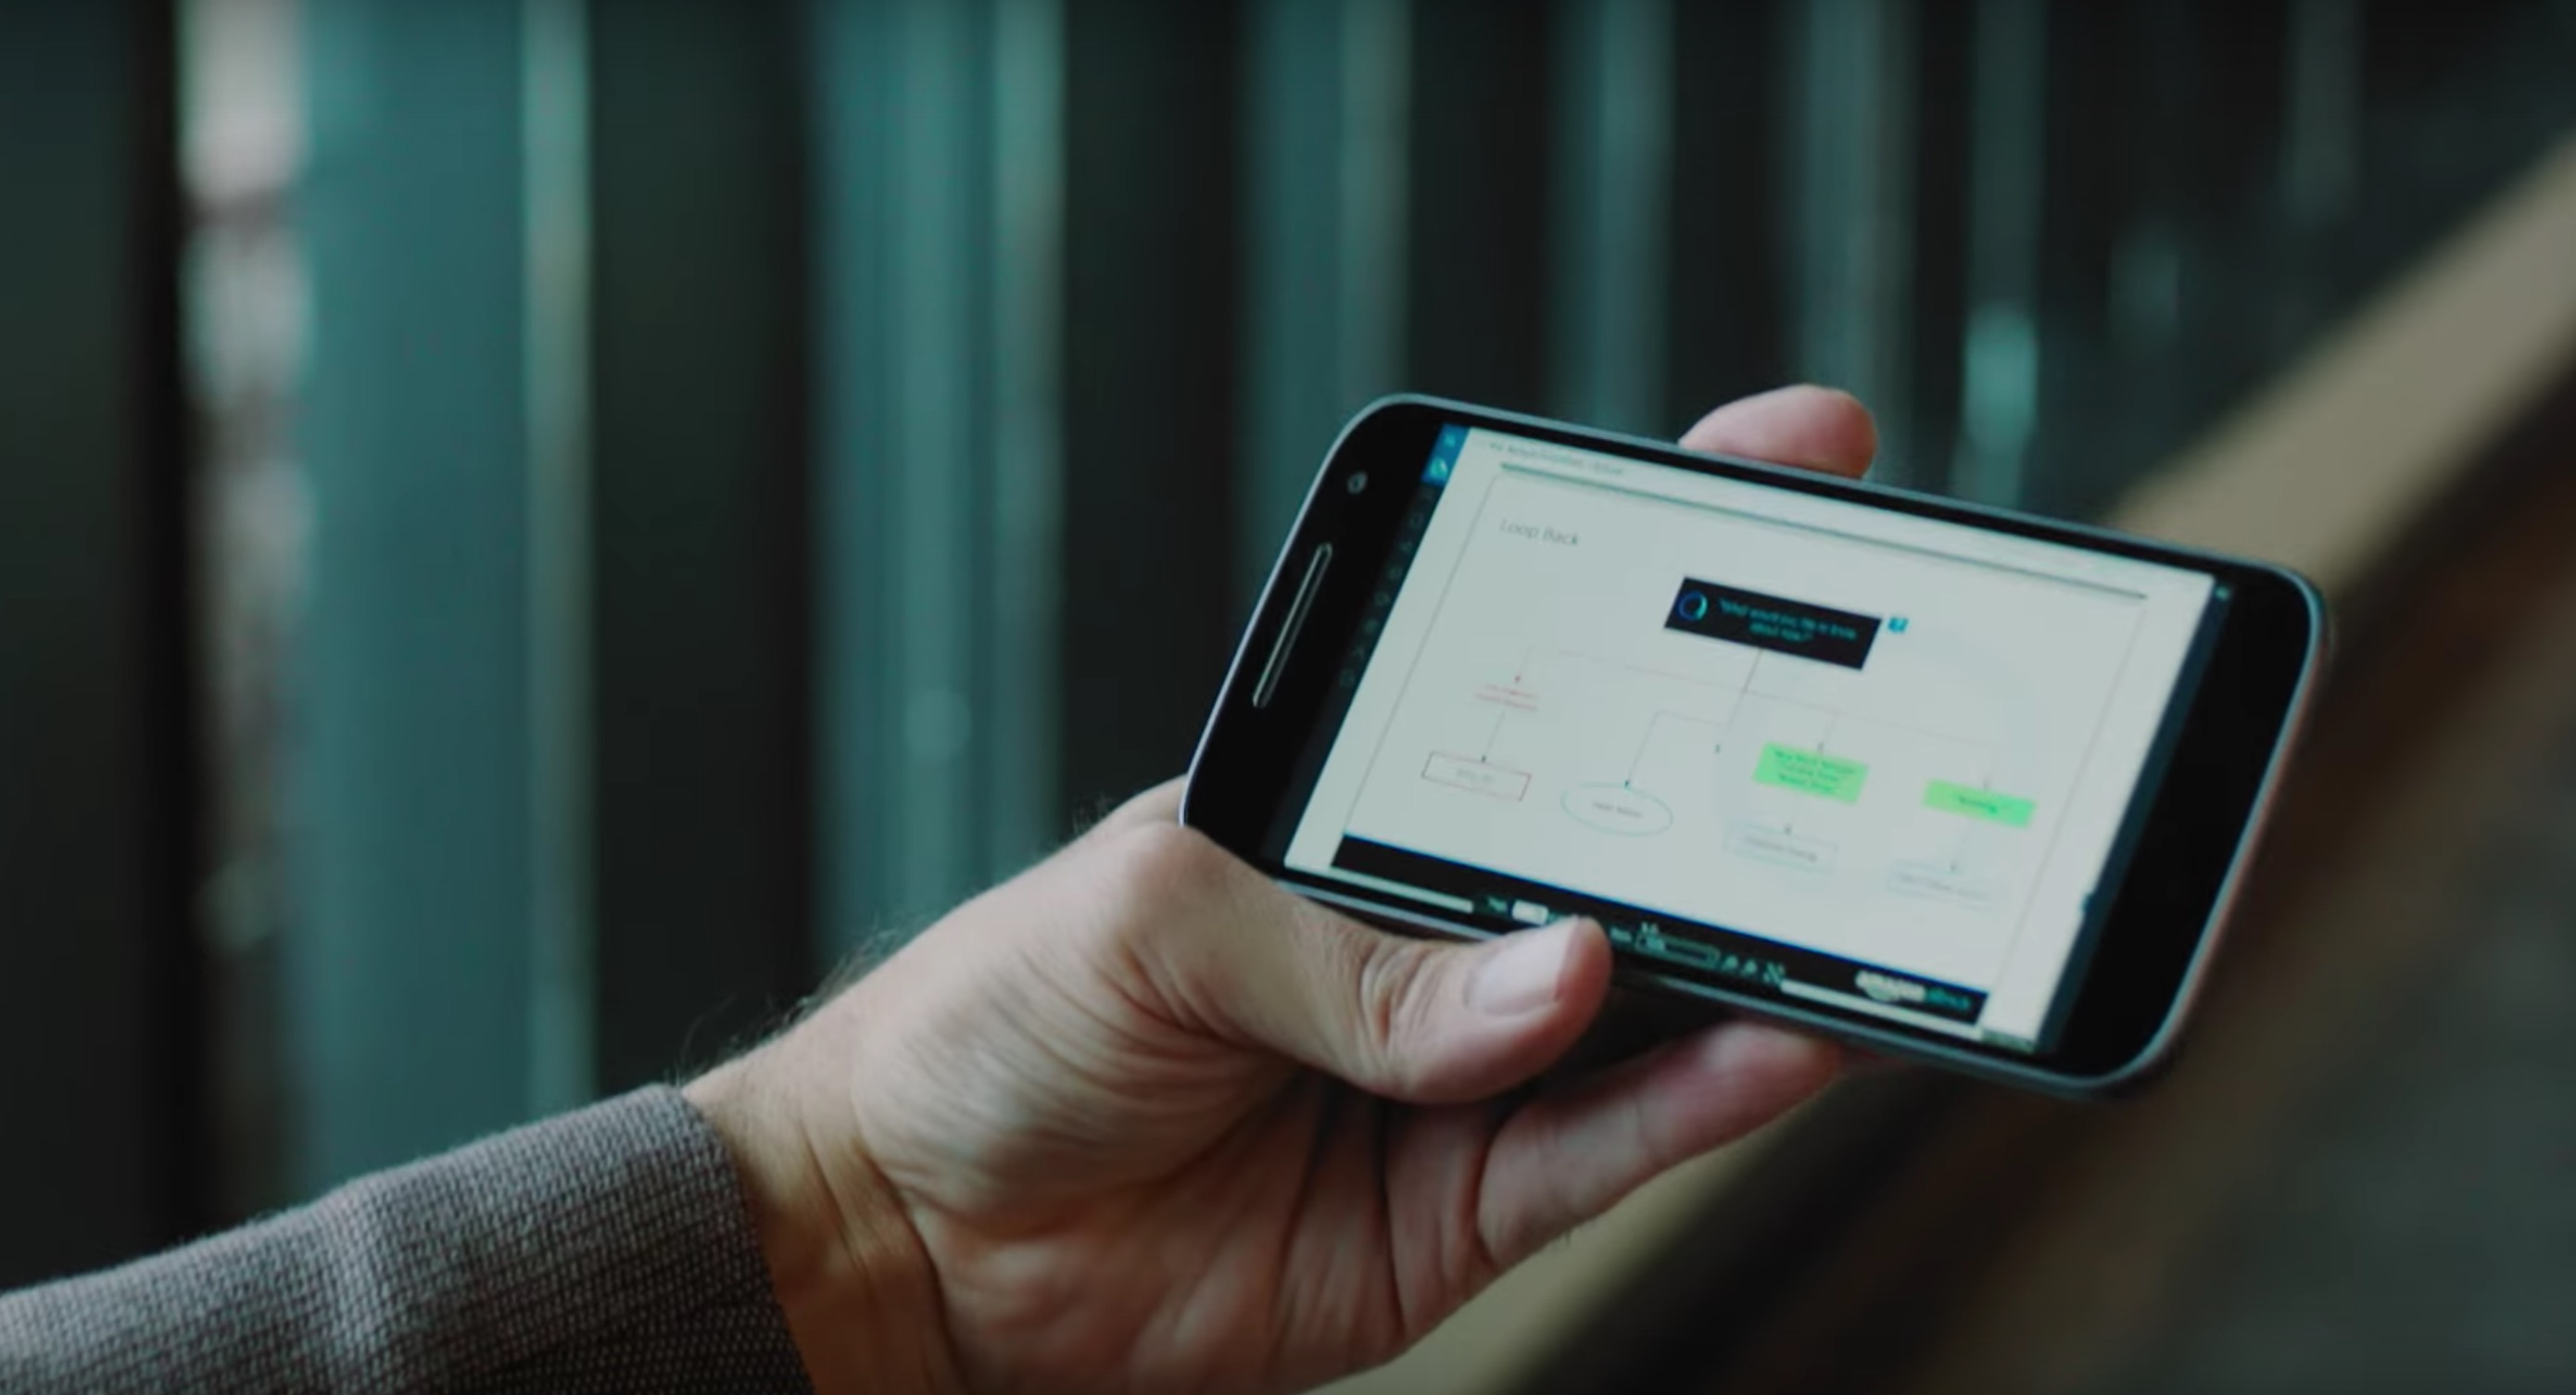 Amazon Chime mobile app - Amazon launches Chime